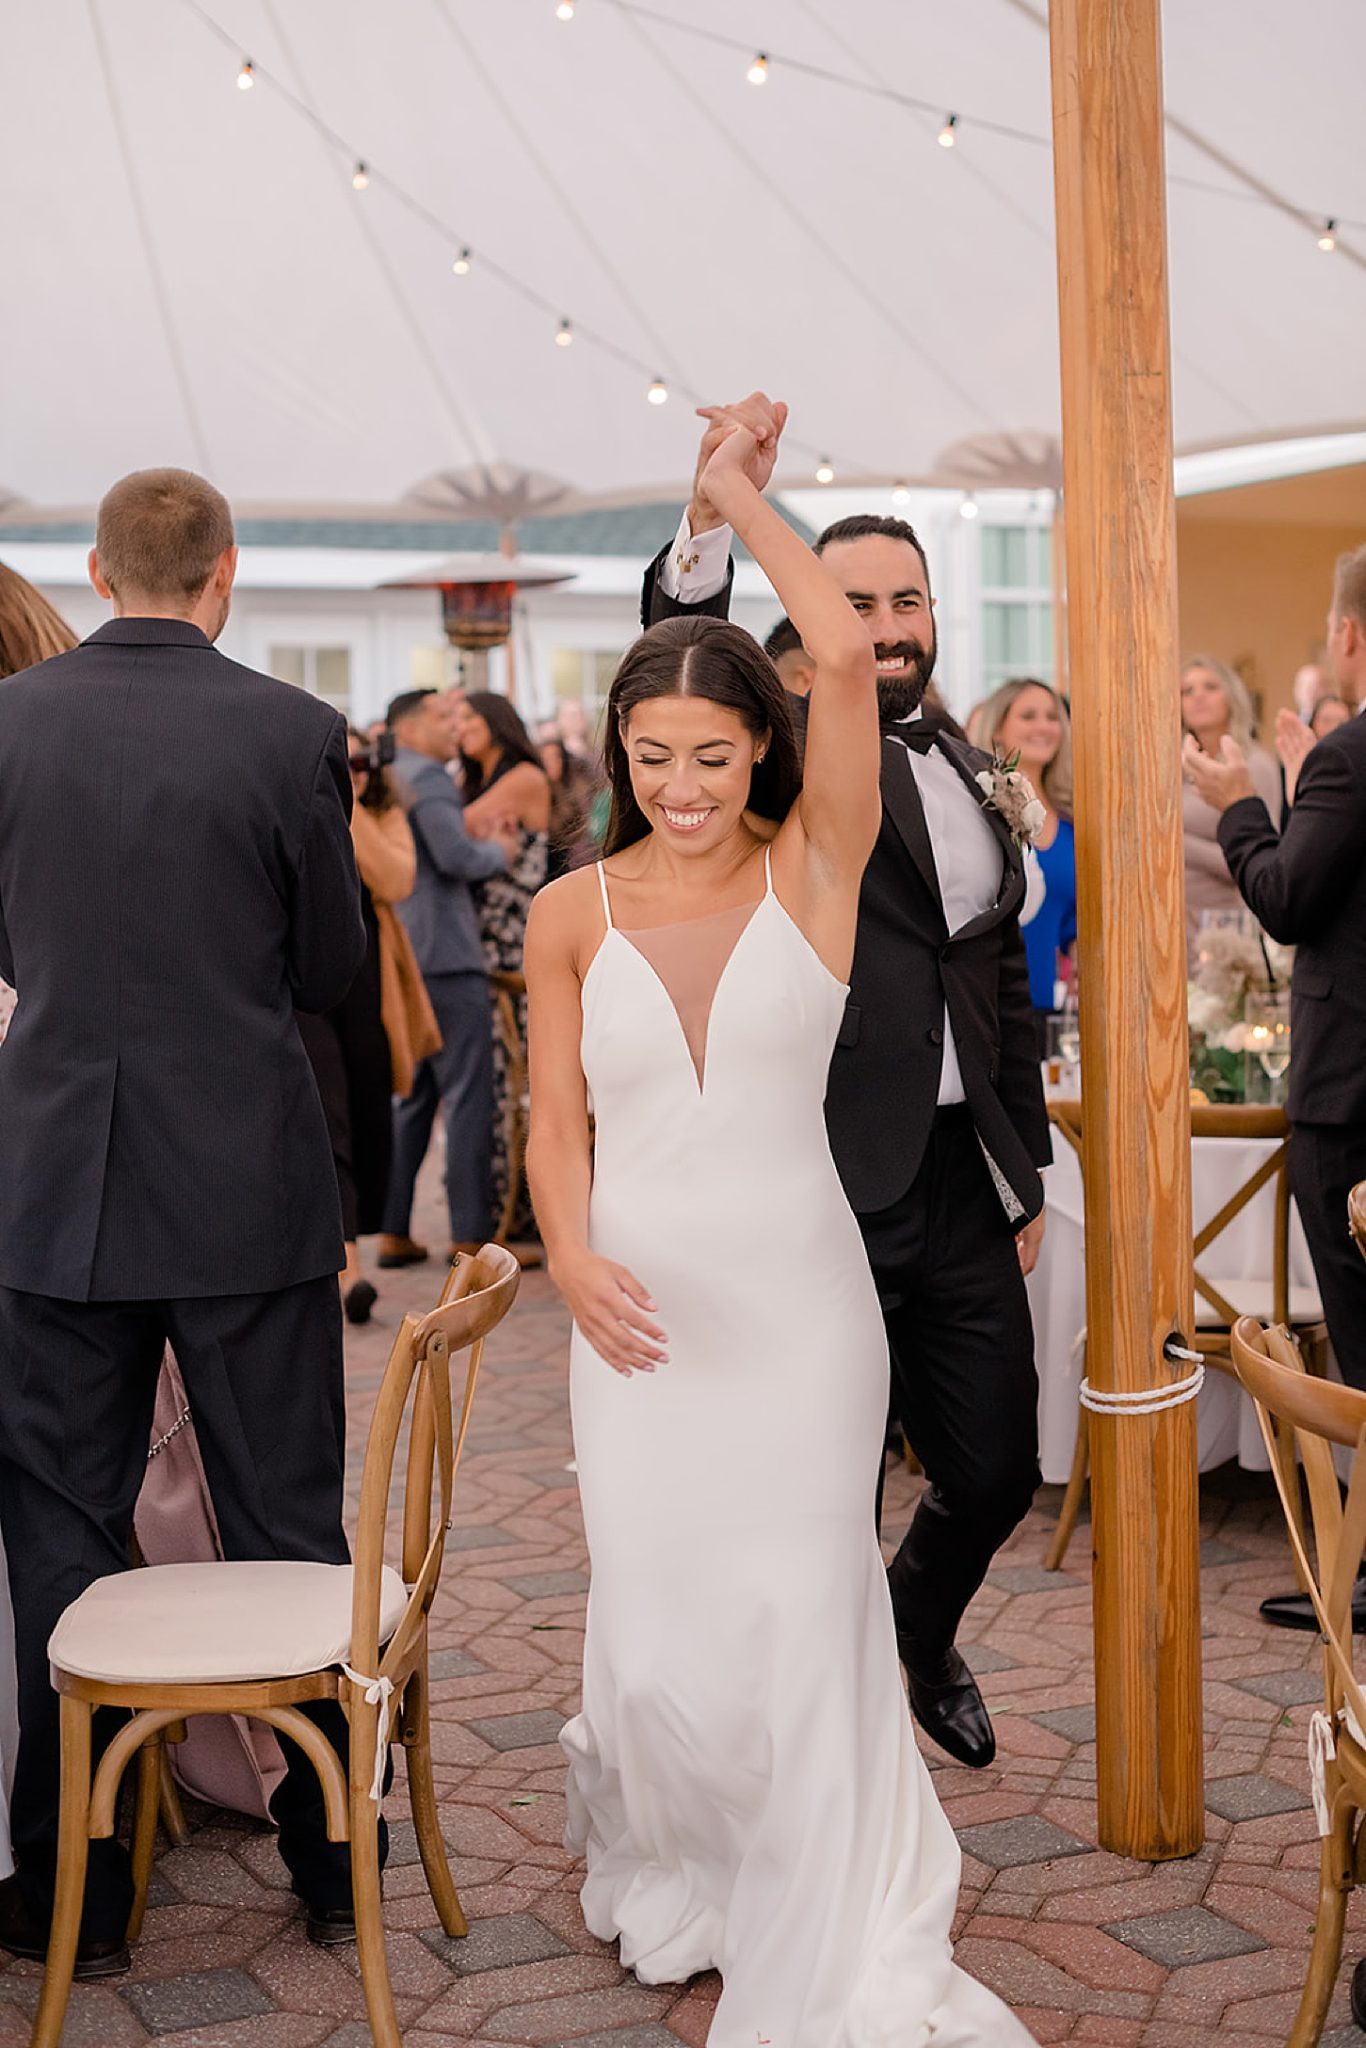 Linwood Country Club Wedding Photography by Magdalena Studios 0026 scaled